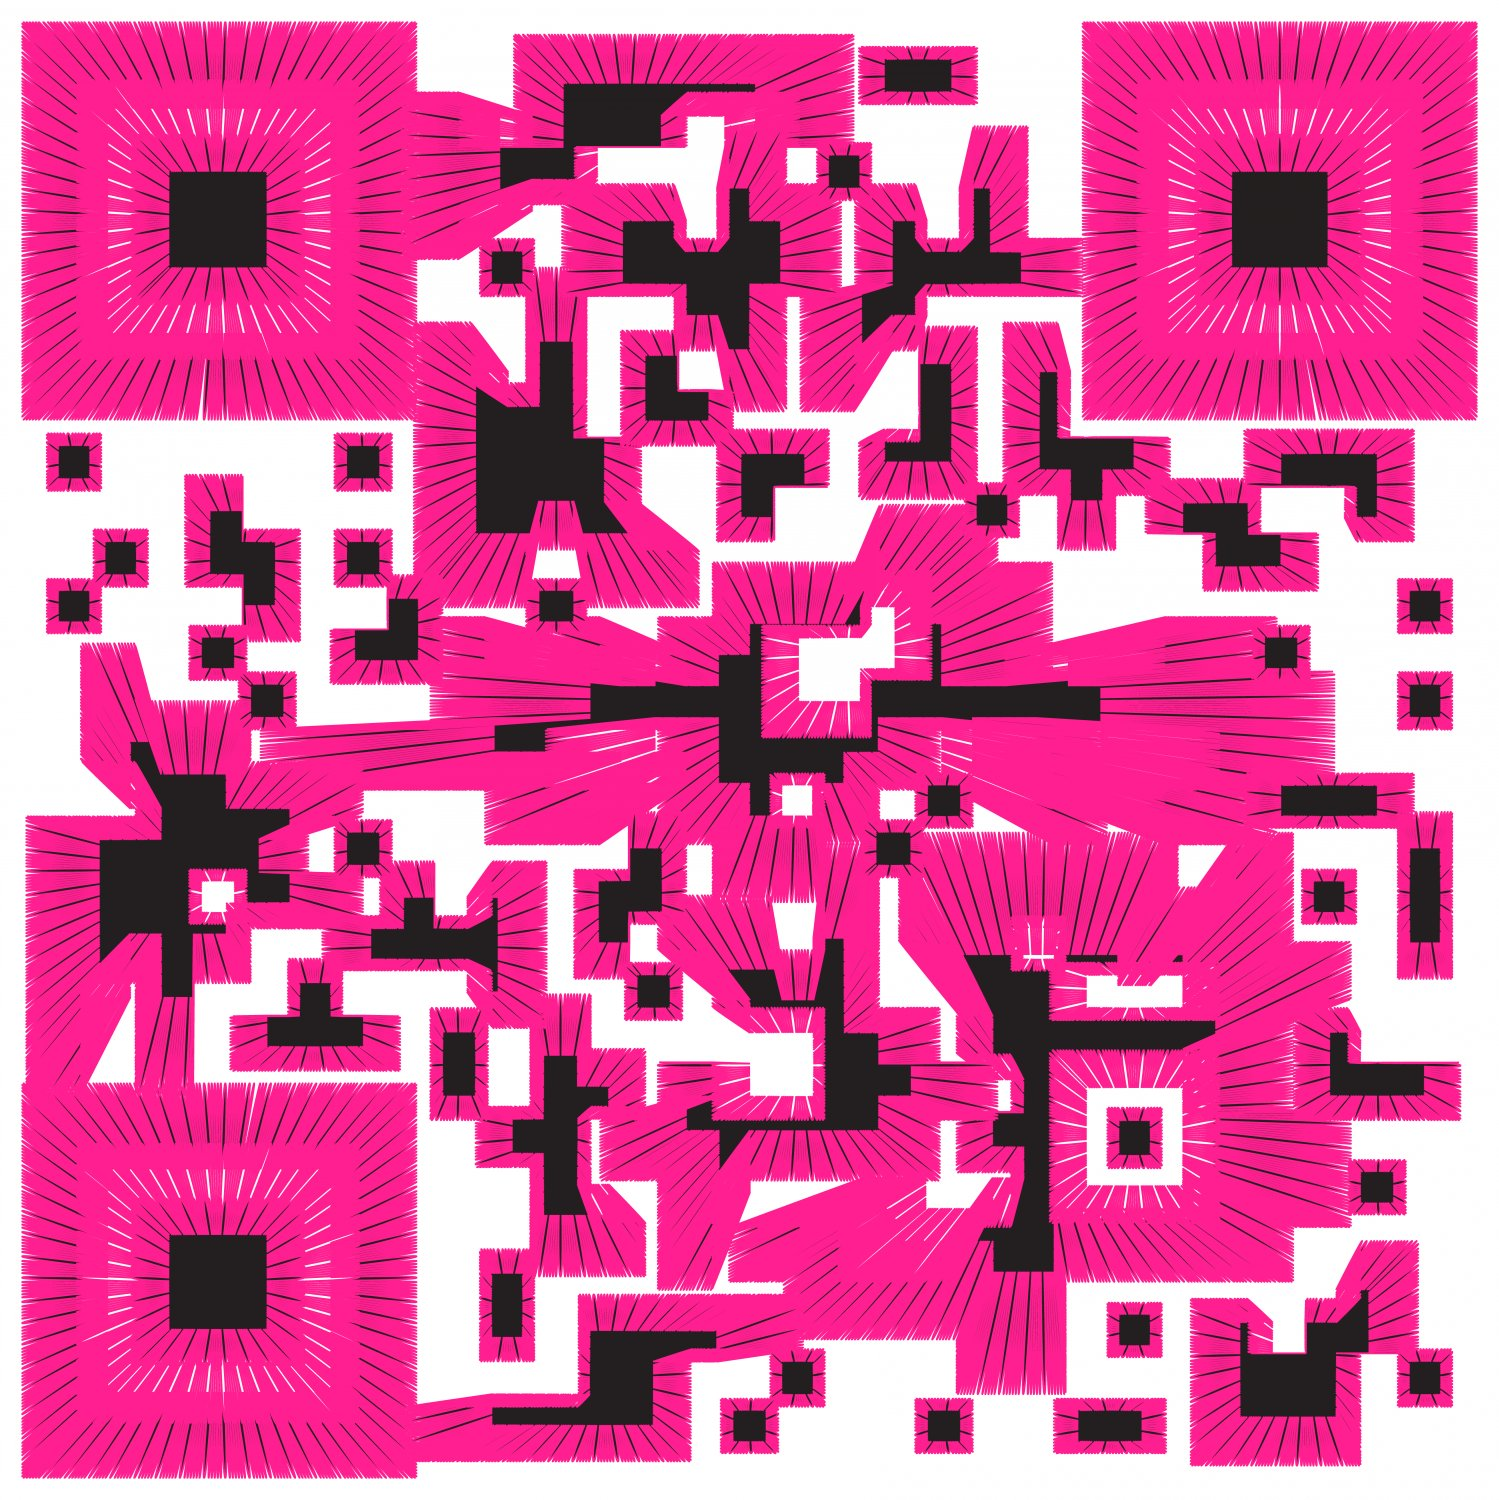 - This QR code was originally designed for marking PC boards. -  - Art and the Zen of QR Codes - QaRt - making art from QR codes. - - art  - photography - by Tony Karp